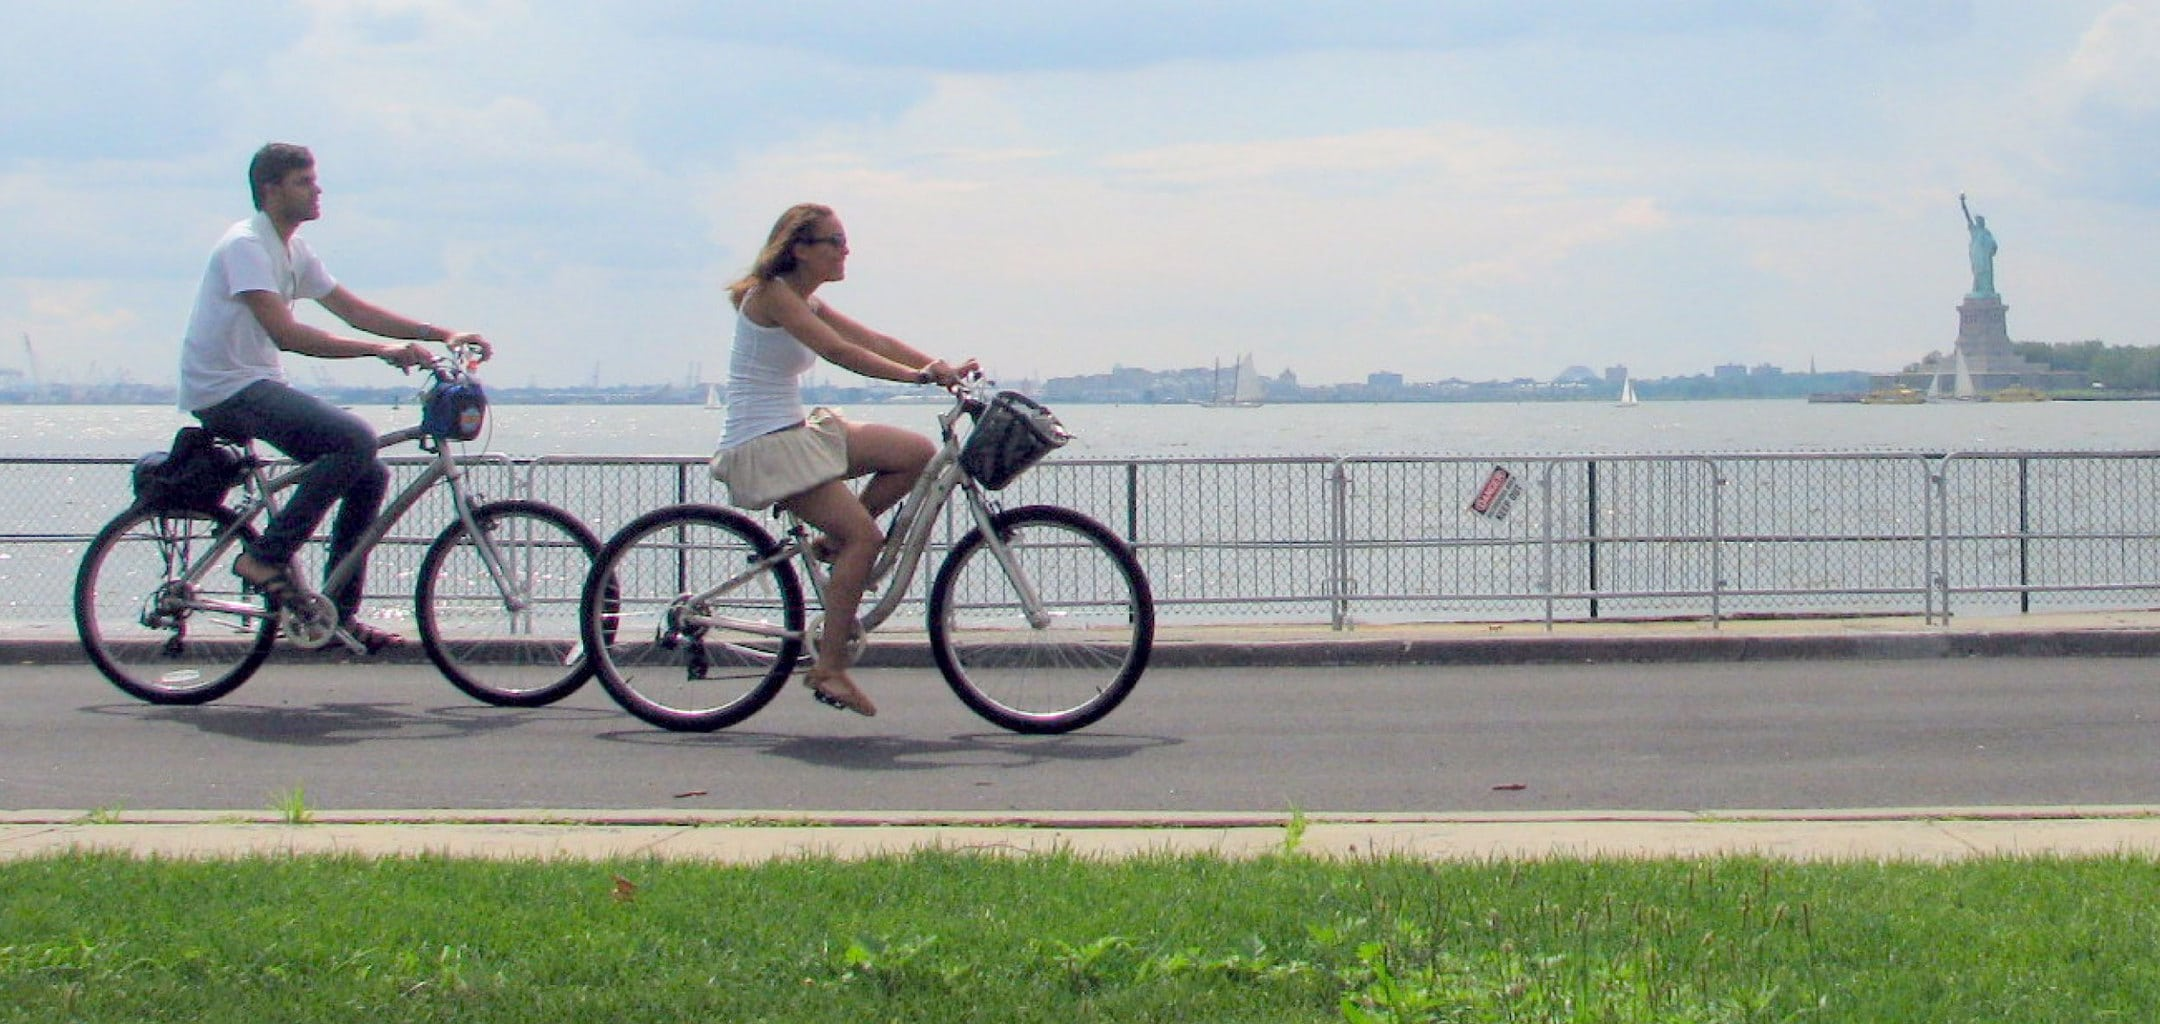 Bike Island governors island